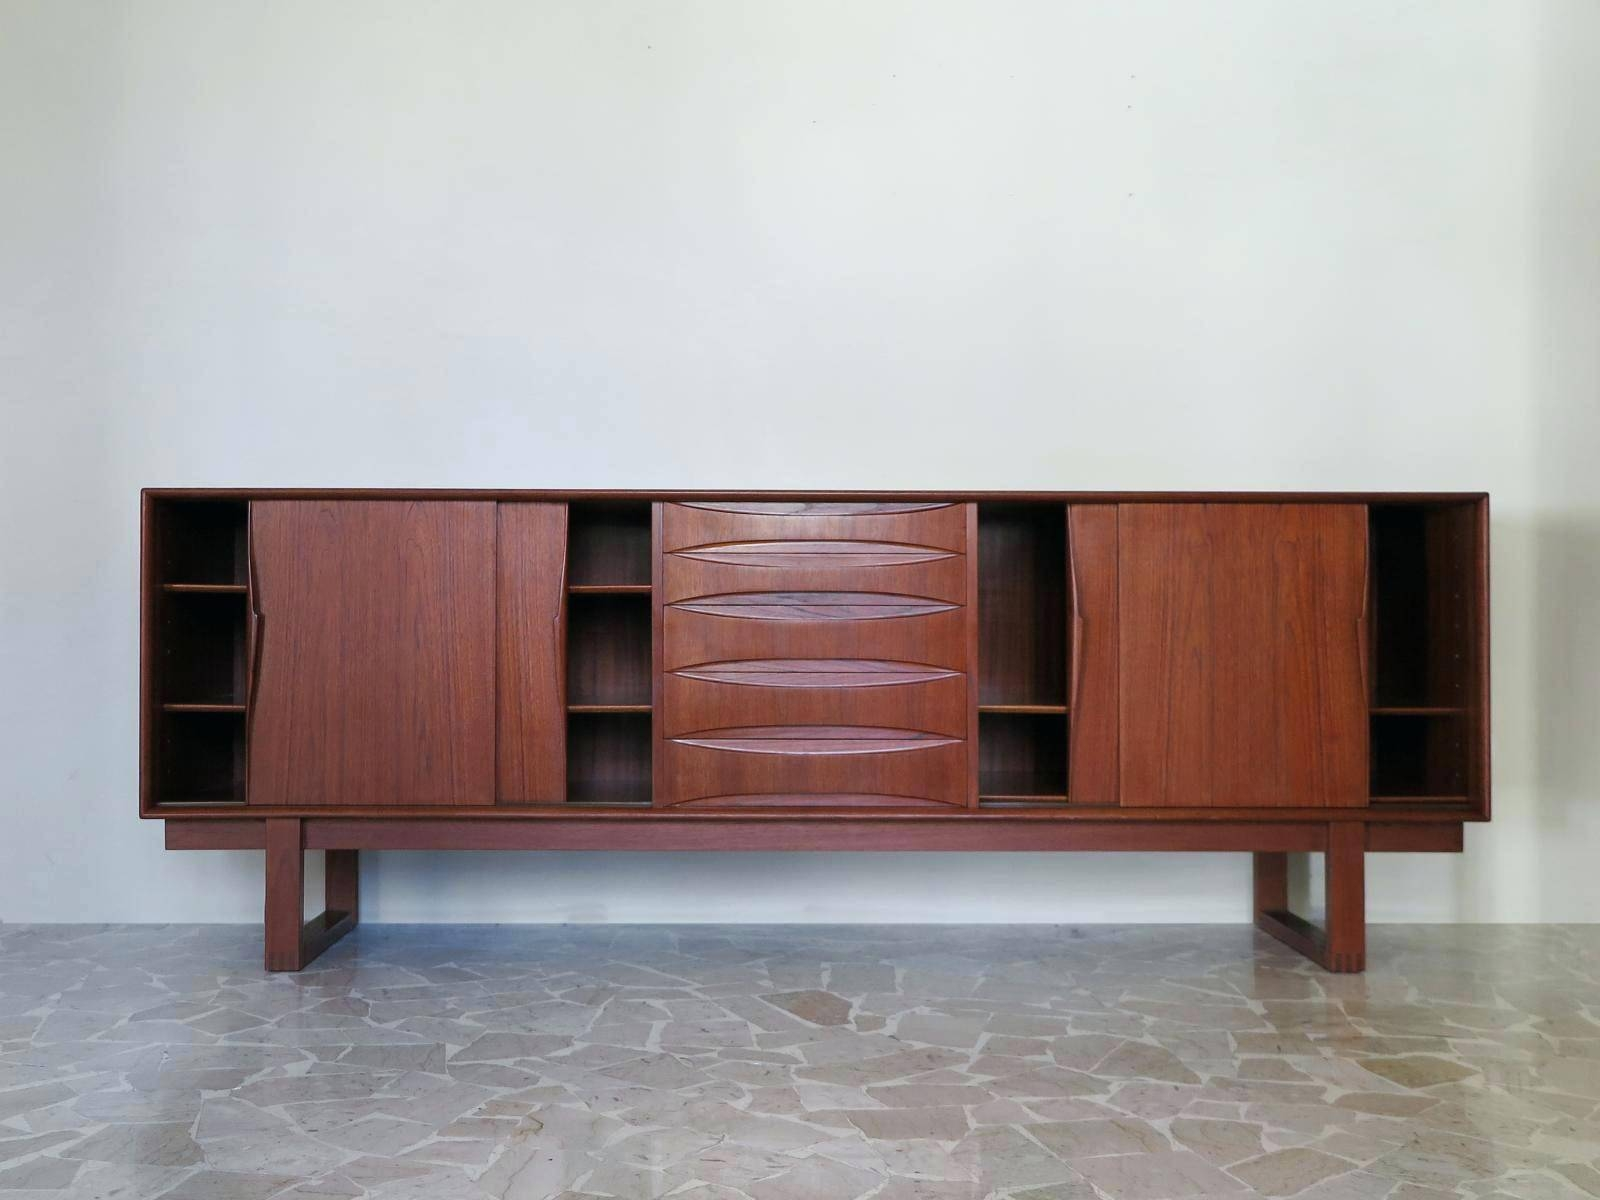 Sideboard Vintage Robert Heritage Rosewood Heals Retro Danish regarding 50S Sideboards (Image 11 of 15)